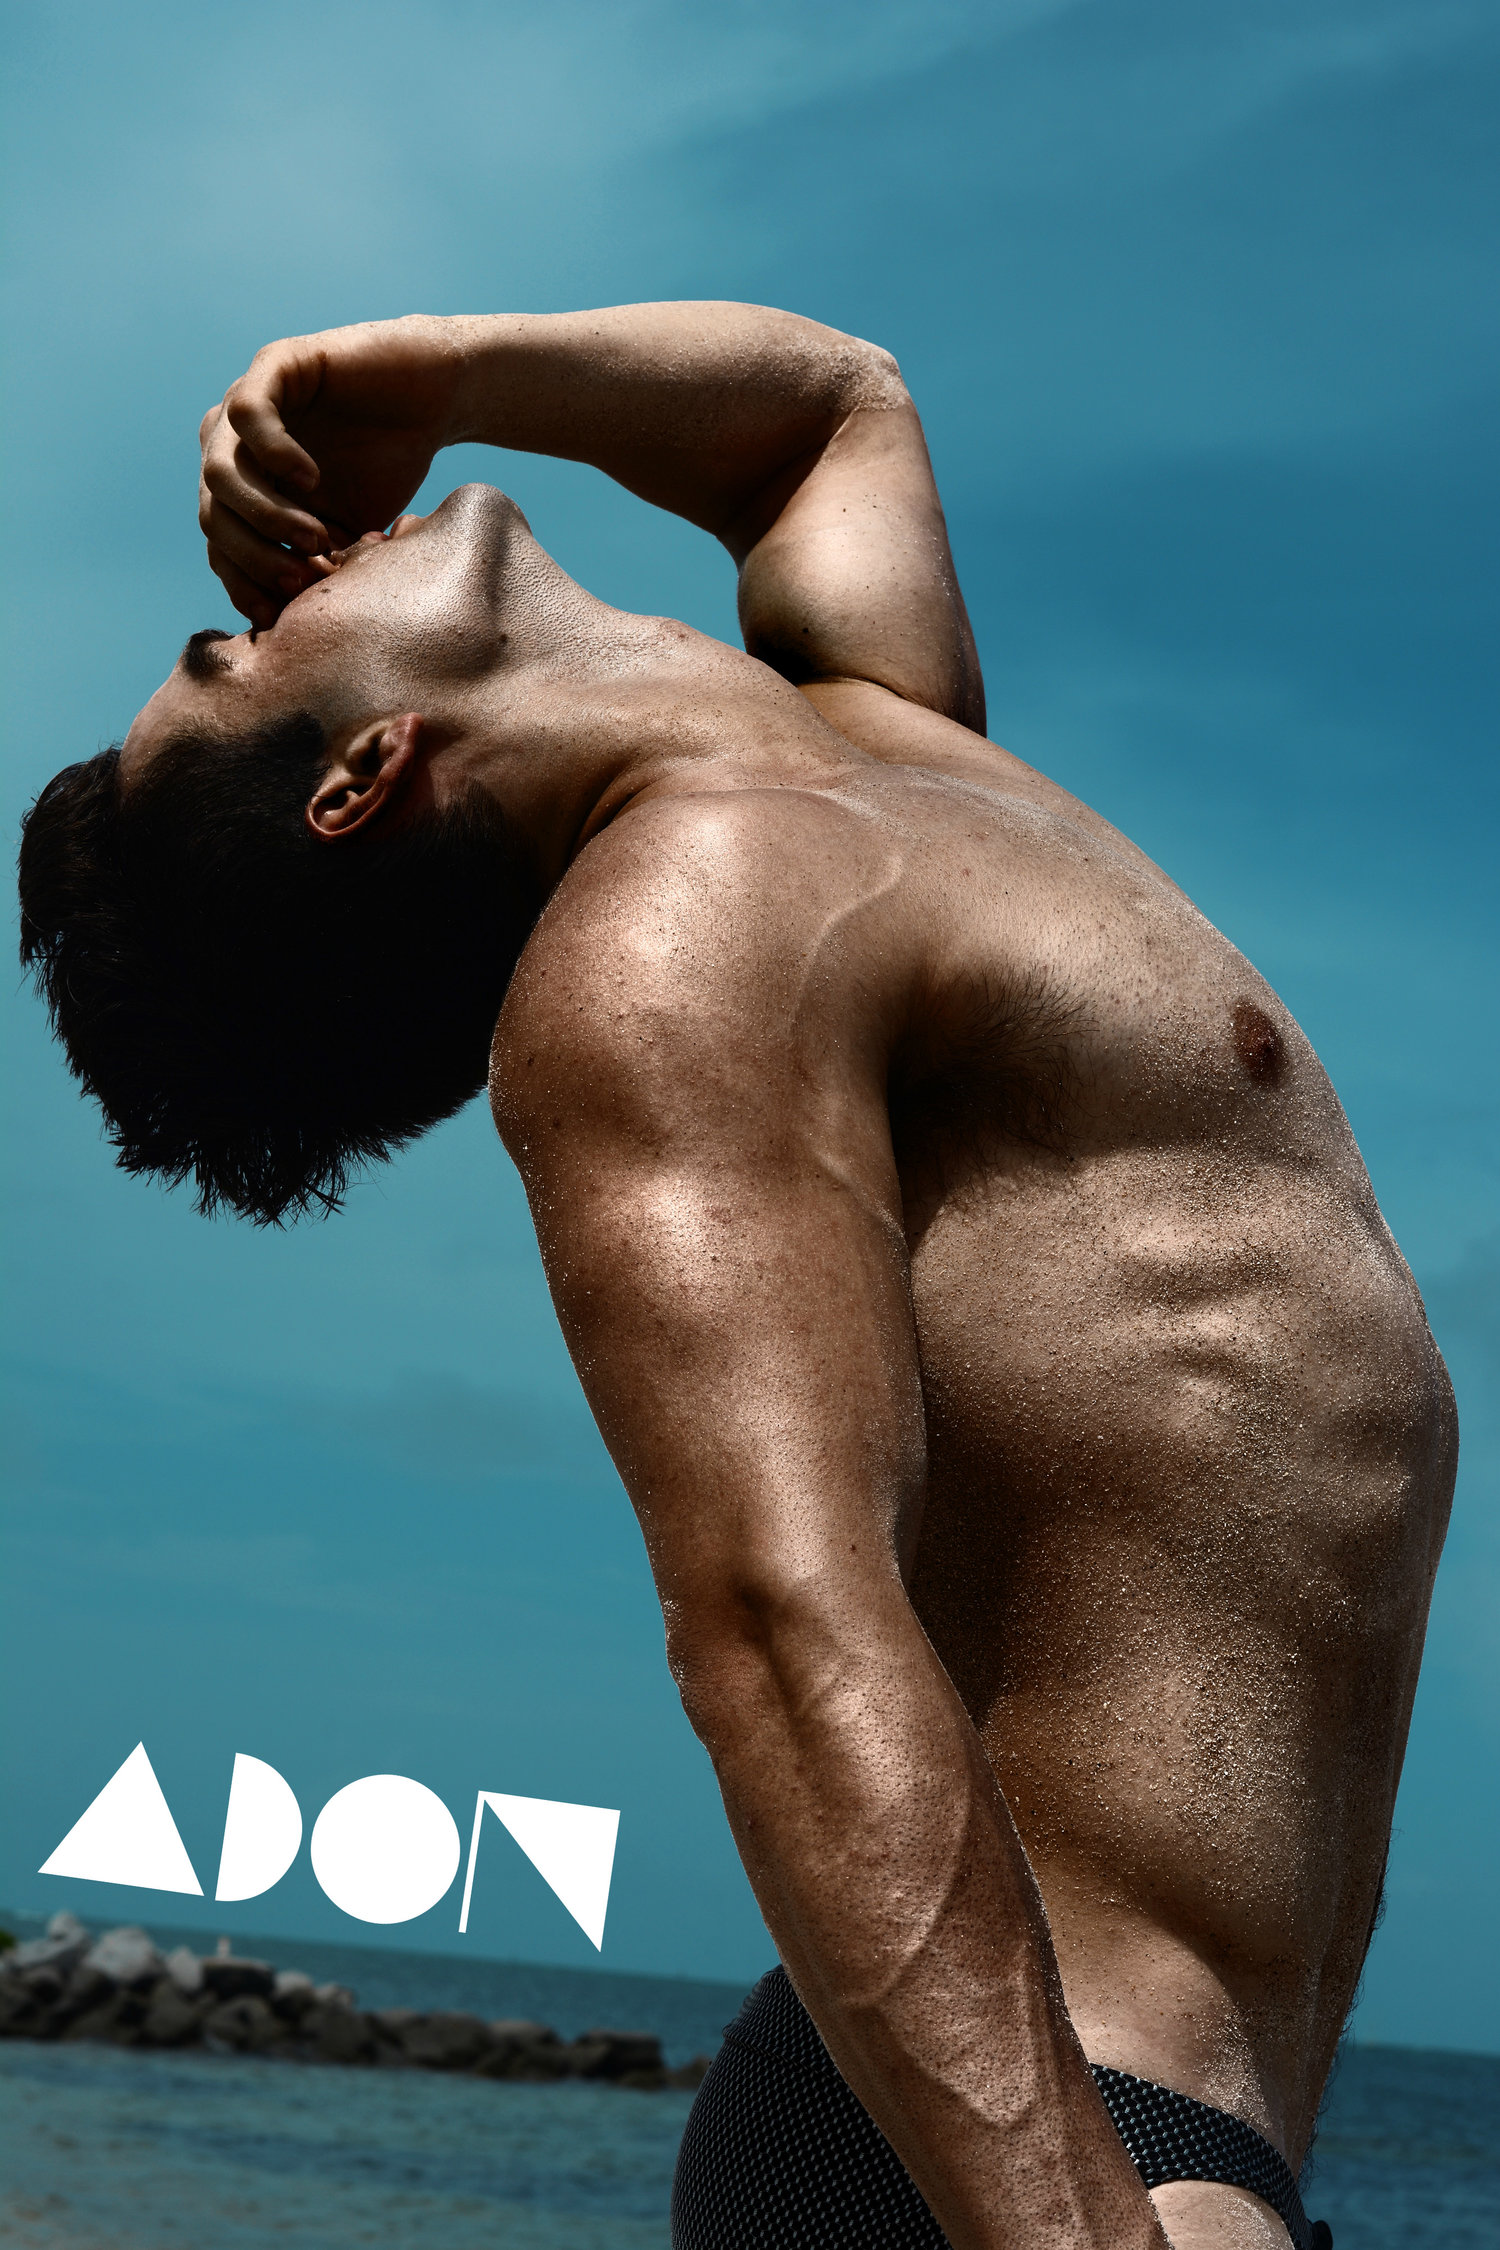 Adon Exclusive: Model Rafael Rey By Stevan Reyes